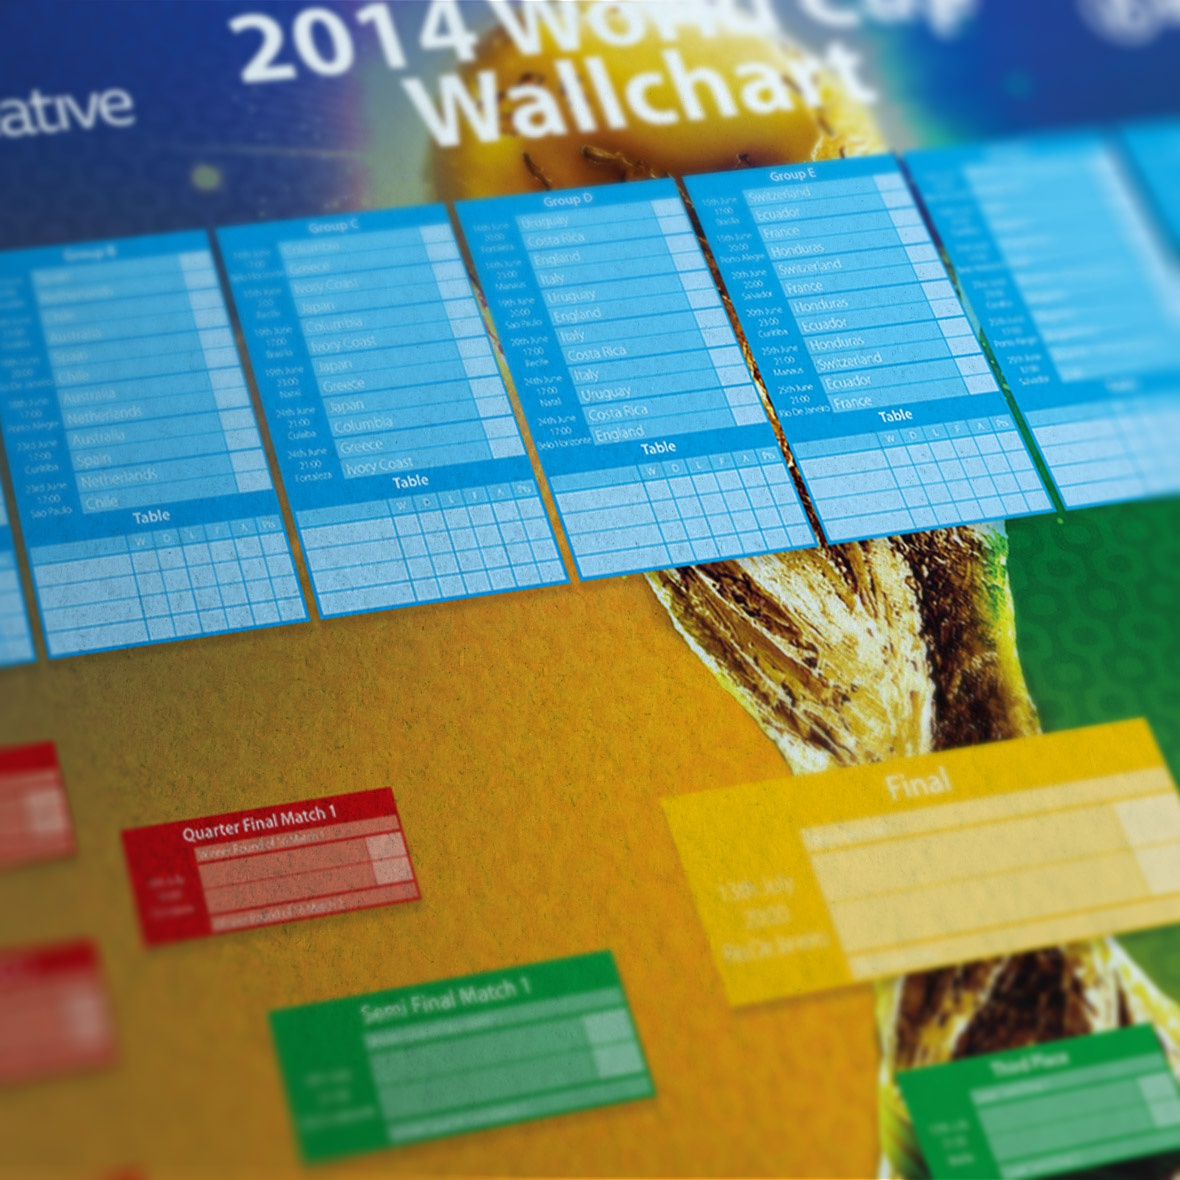 World cup wallchart